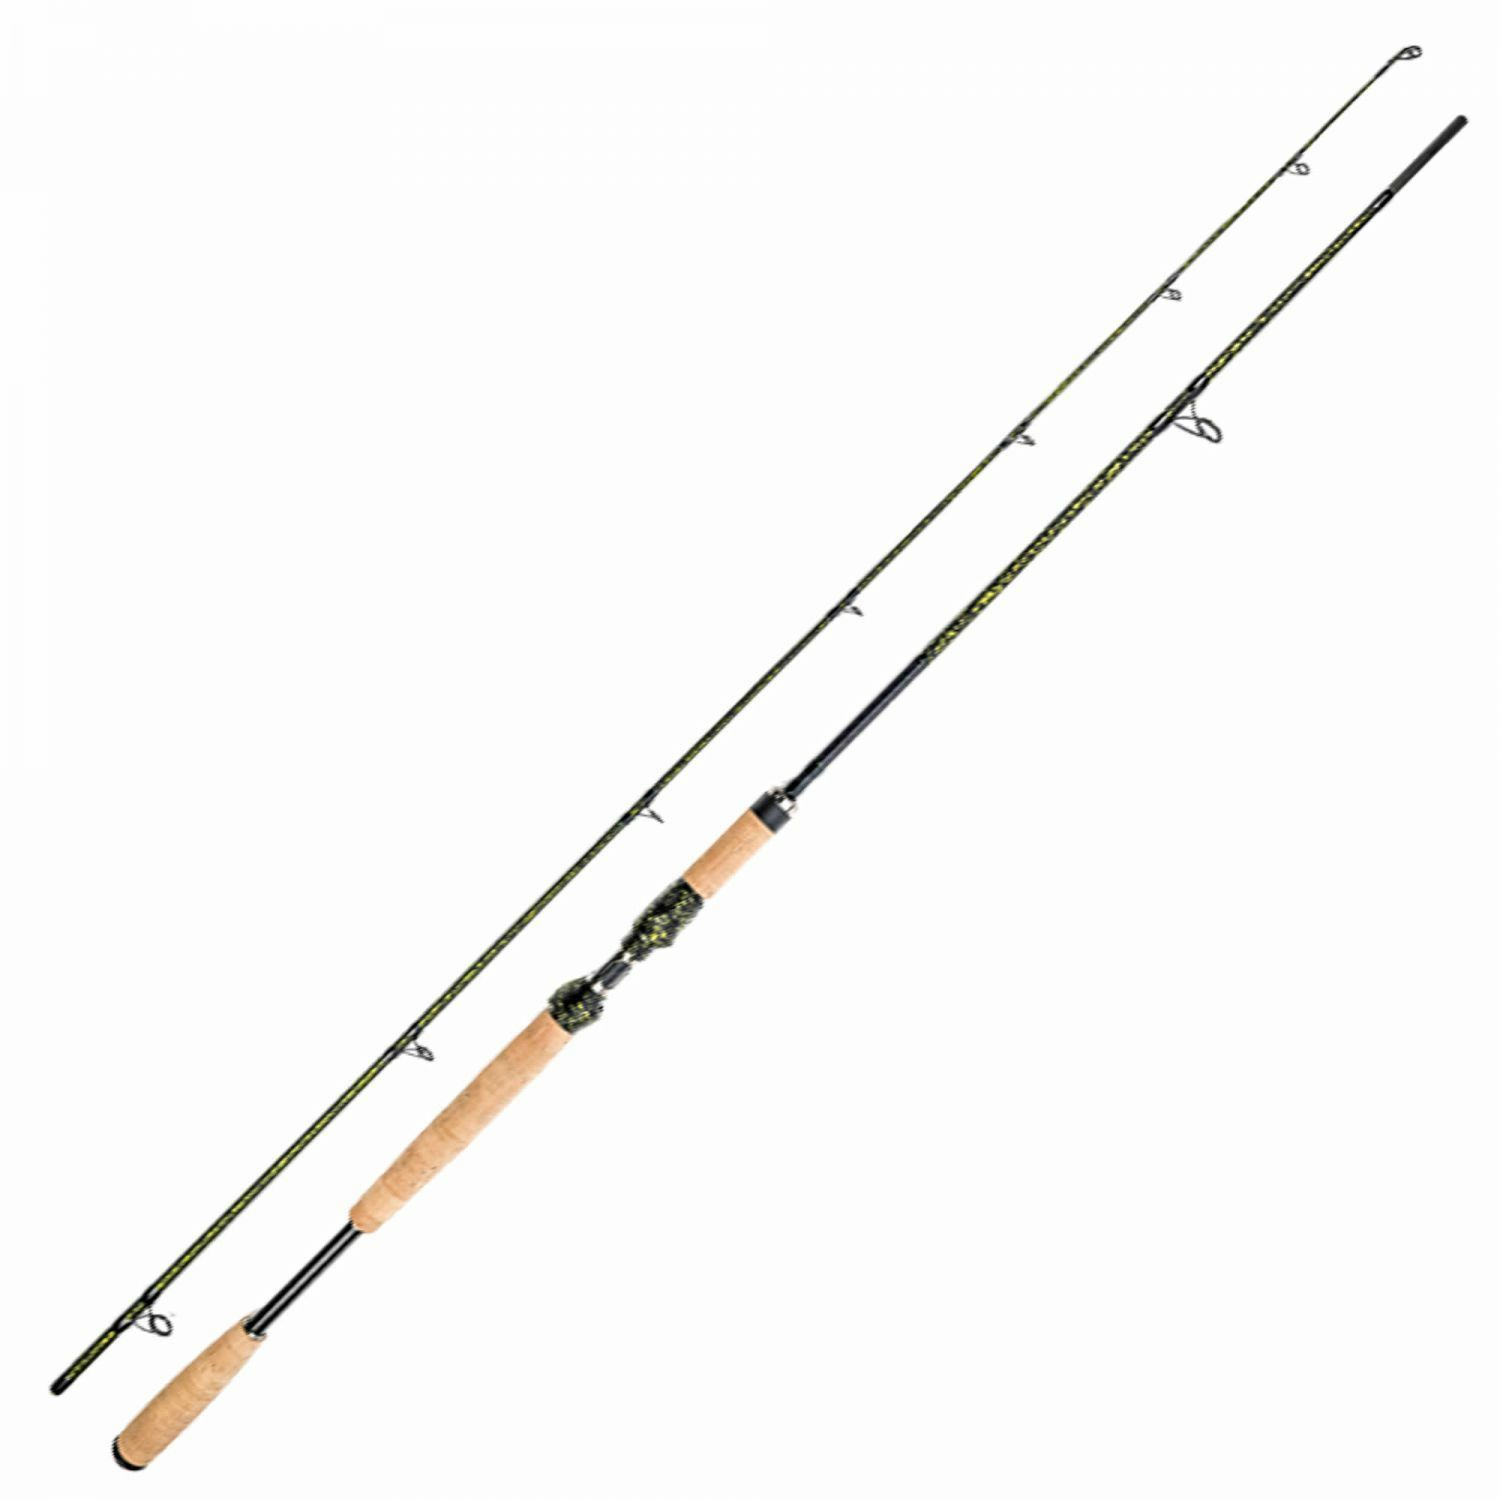 Westin W8 Pike Fighter Powercast Raubfisch Spinnrute 218cm 25-100g Hecht + Rohr